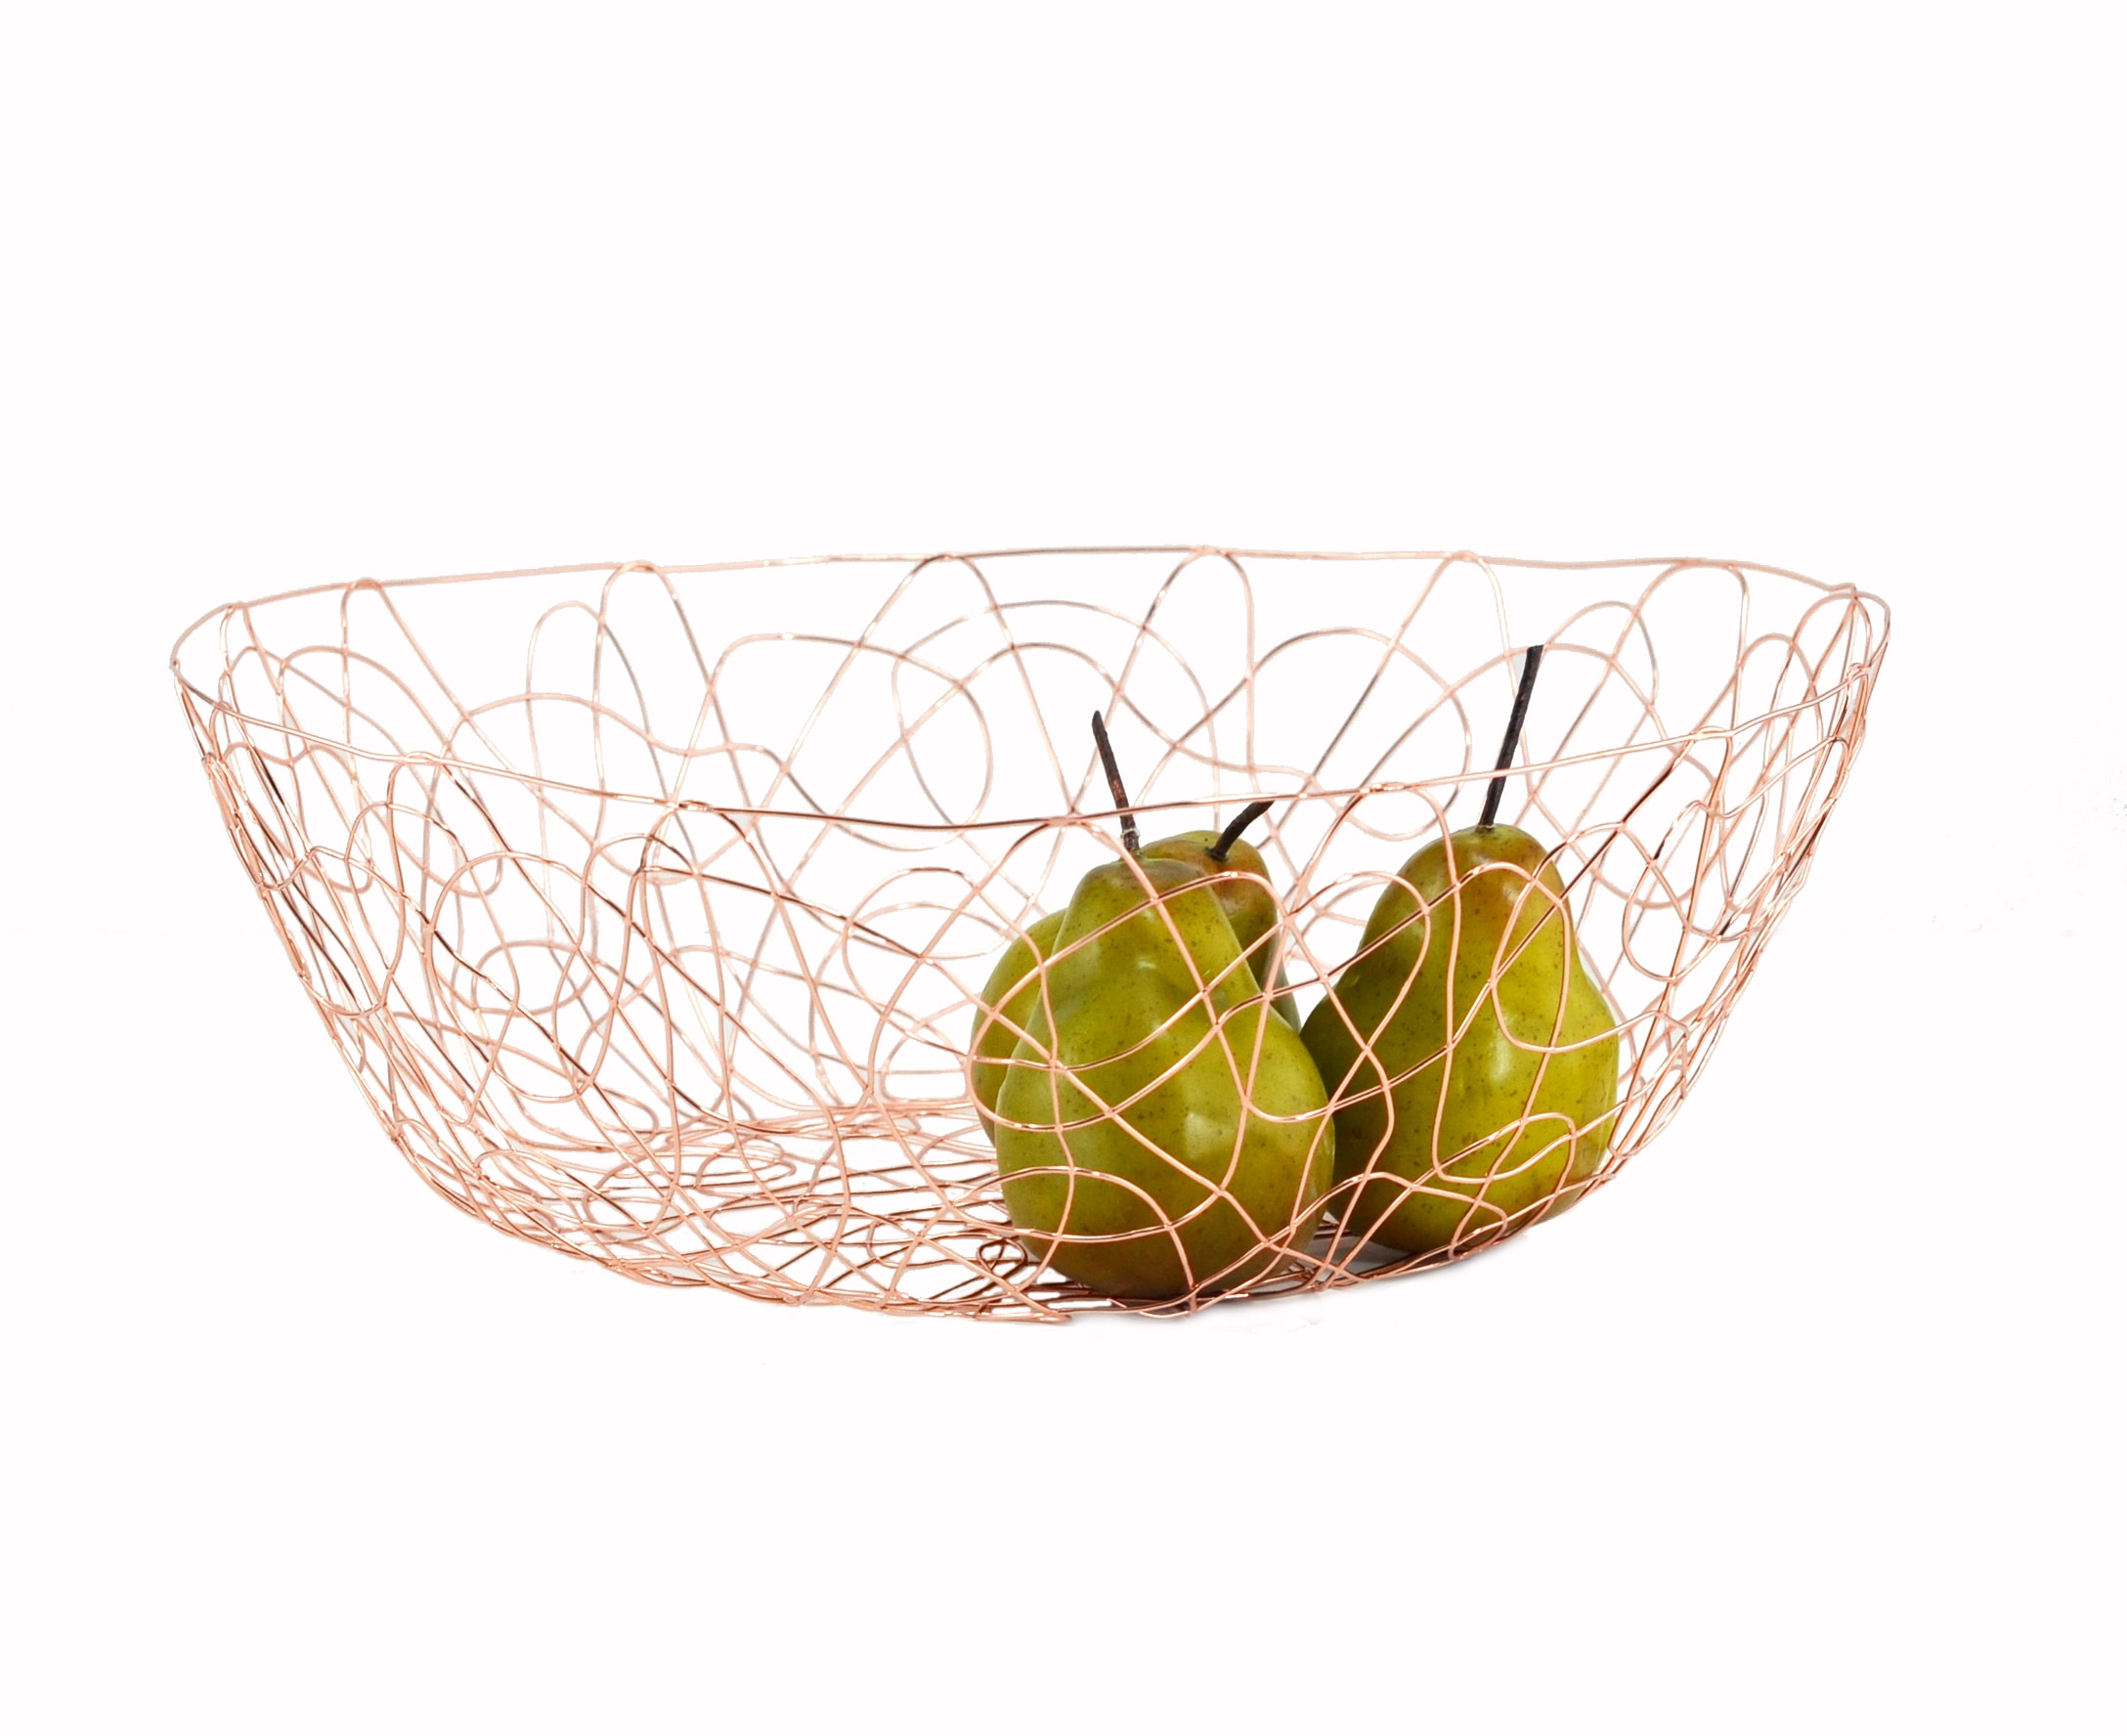 Wire Fruit Bowls Online Shopping For Canadians